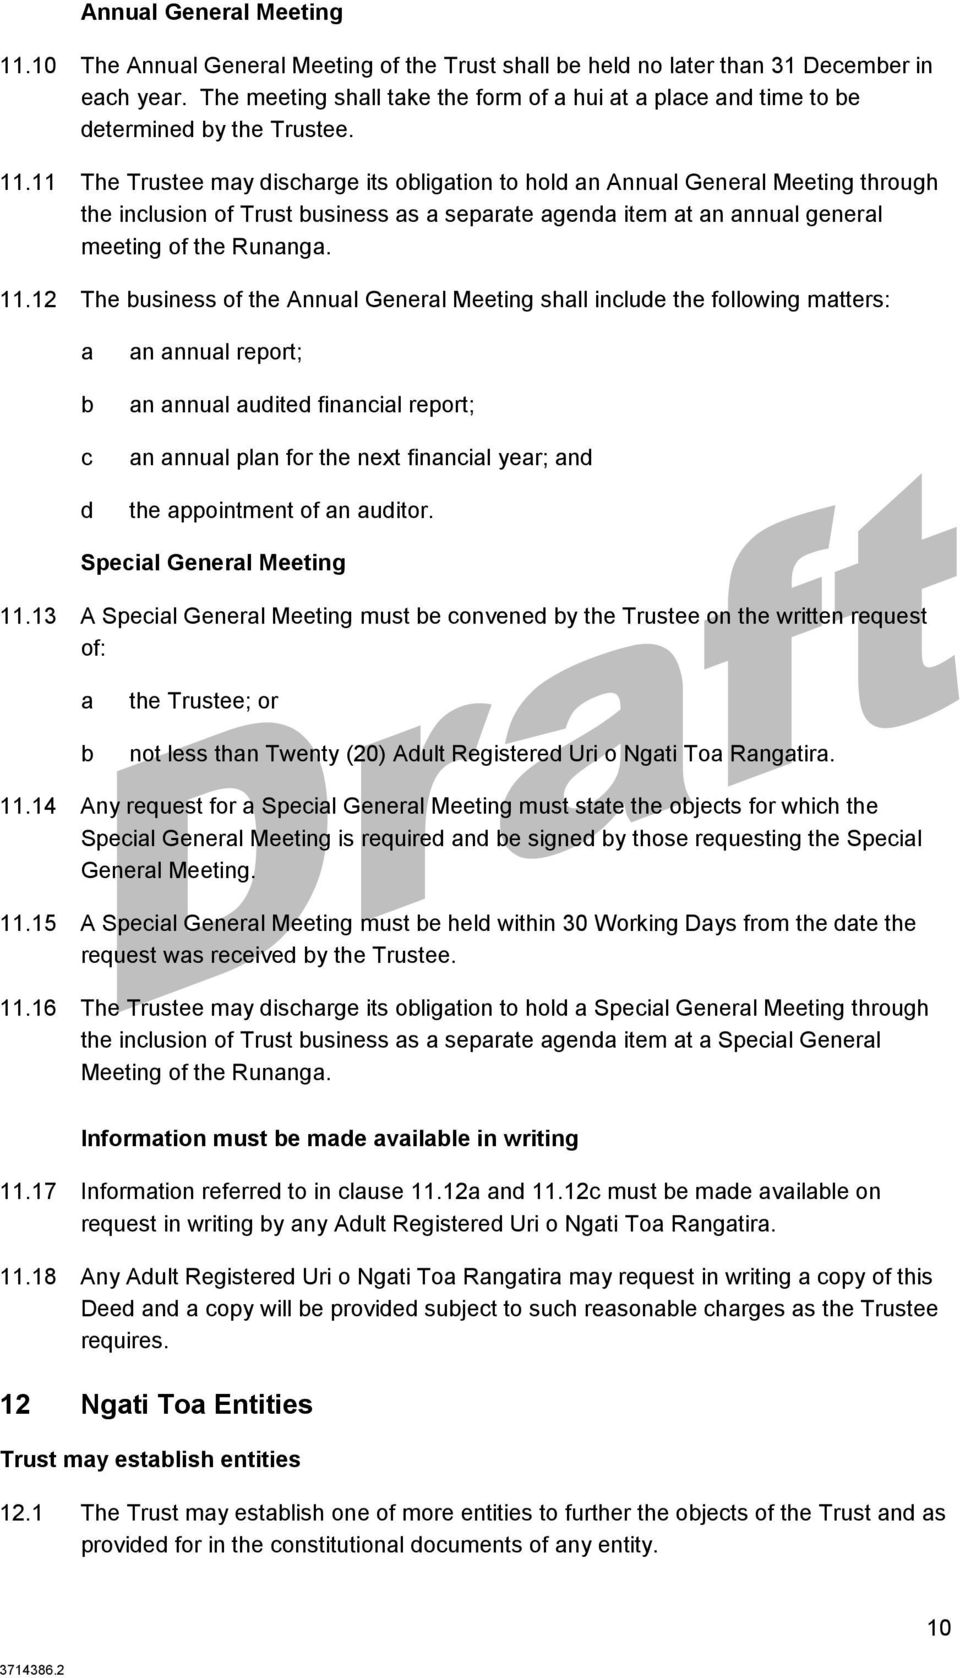 Speil Generl Meeting 11.13 A Speil Generl Meeting must e onvened y the Trustee on the written request of: the Trustee; or not less thn Twenty (20) Adult Registered Uri o Ngti To Rngtir. 11.14 Any request for Speil Generl Meeting must stte the ojets for whih the Speil Generl Meeting is required nd e signed y those requesting the Speil Generl Meeting.